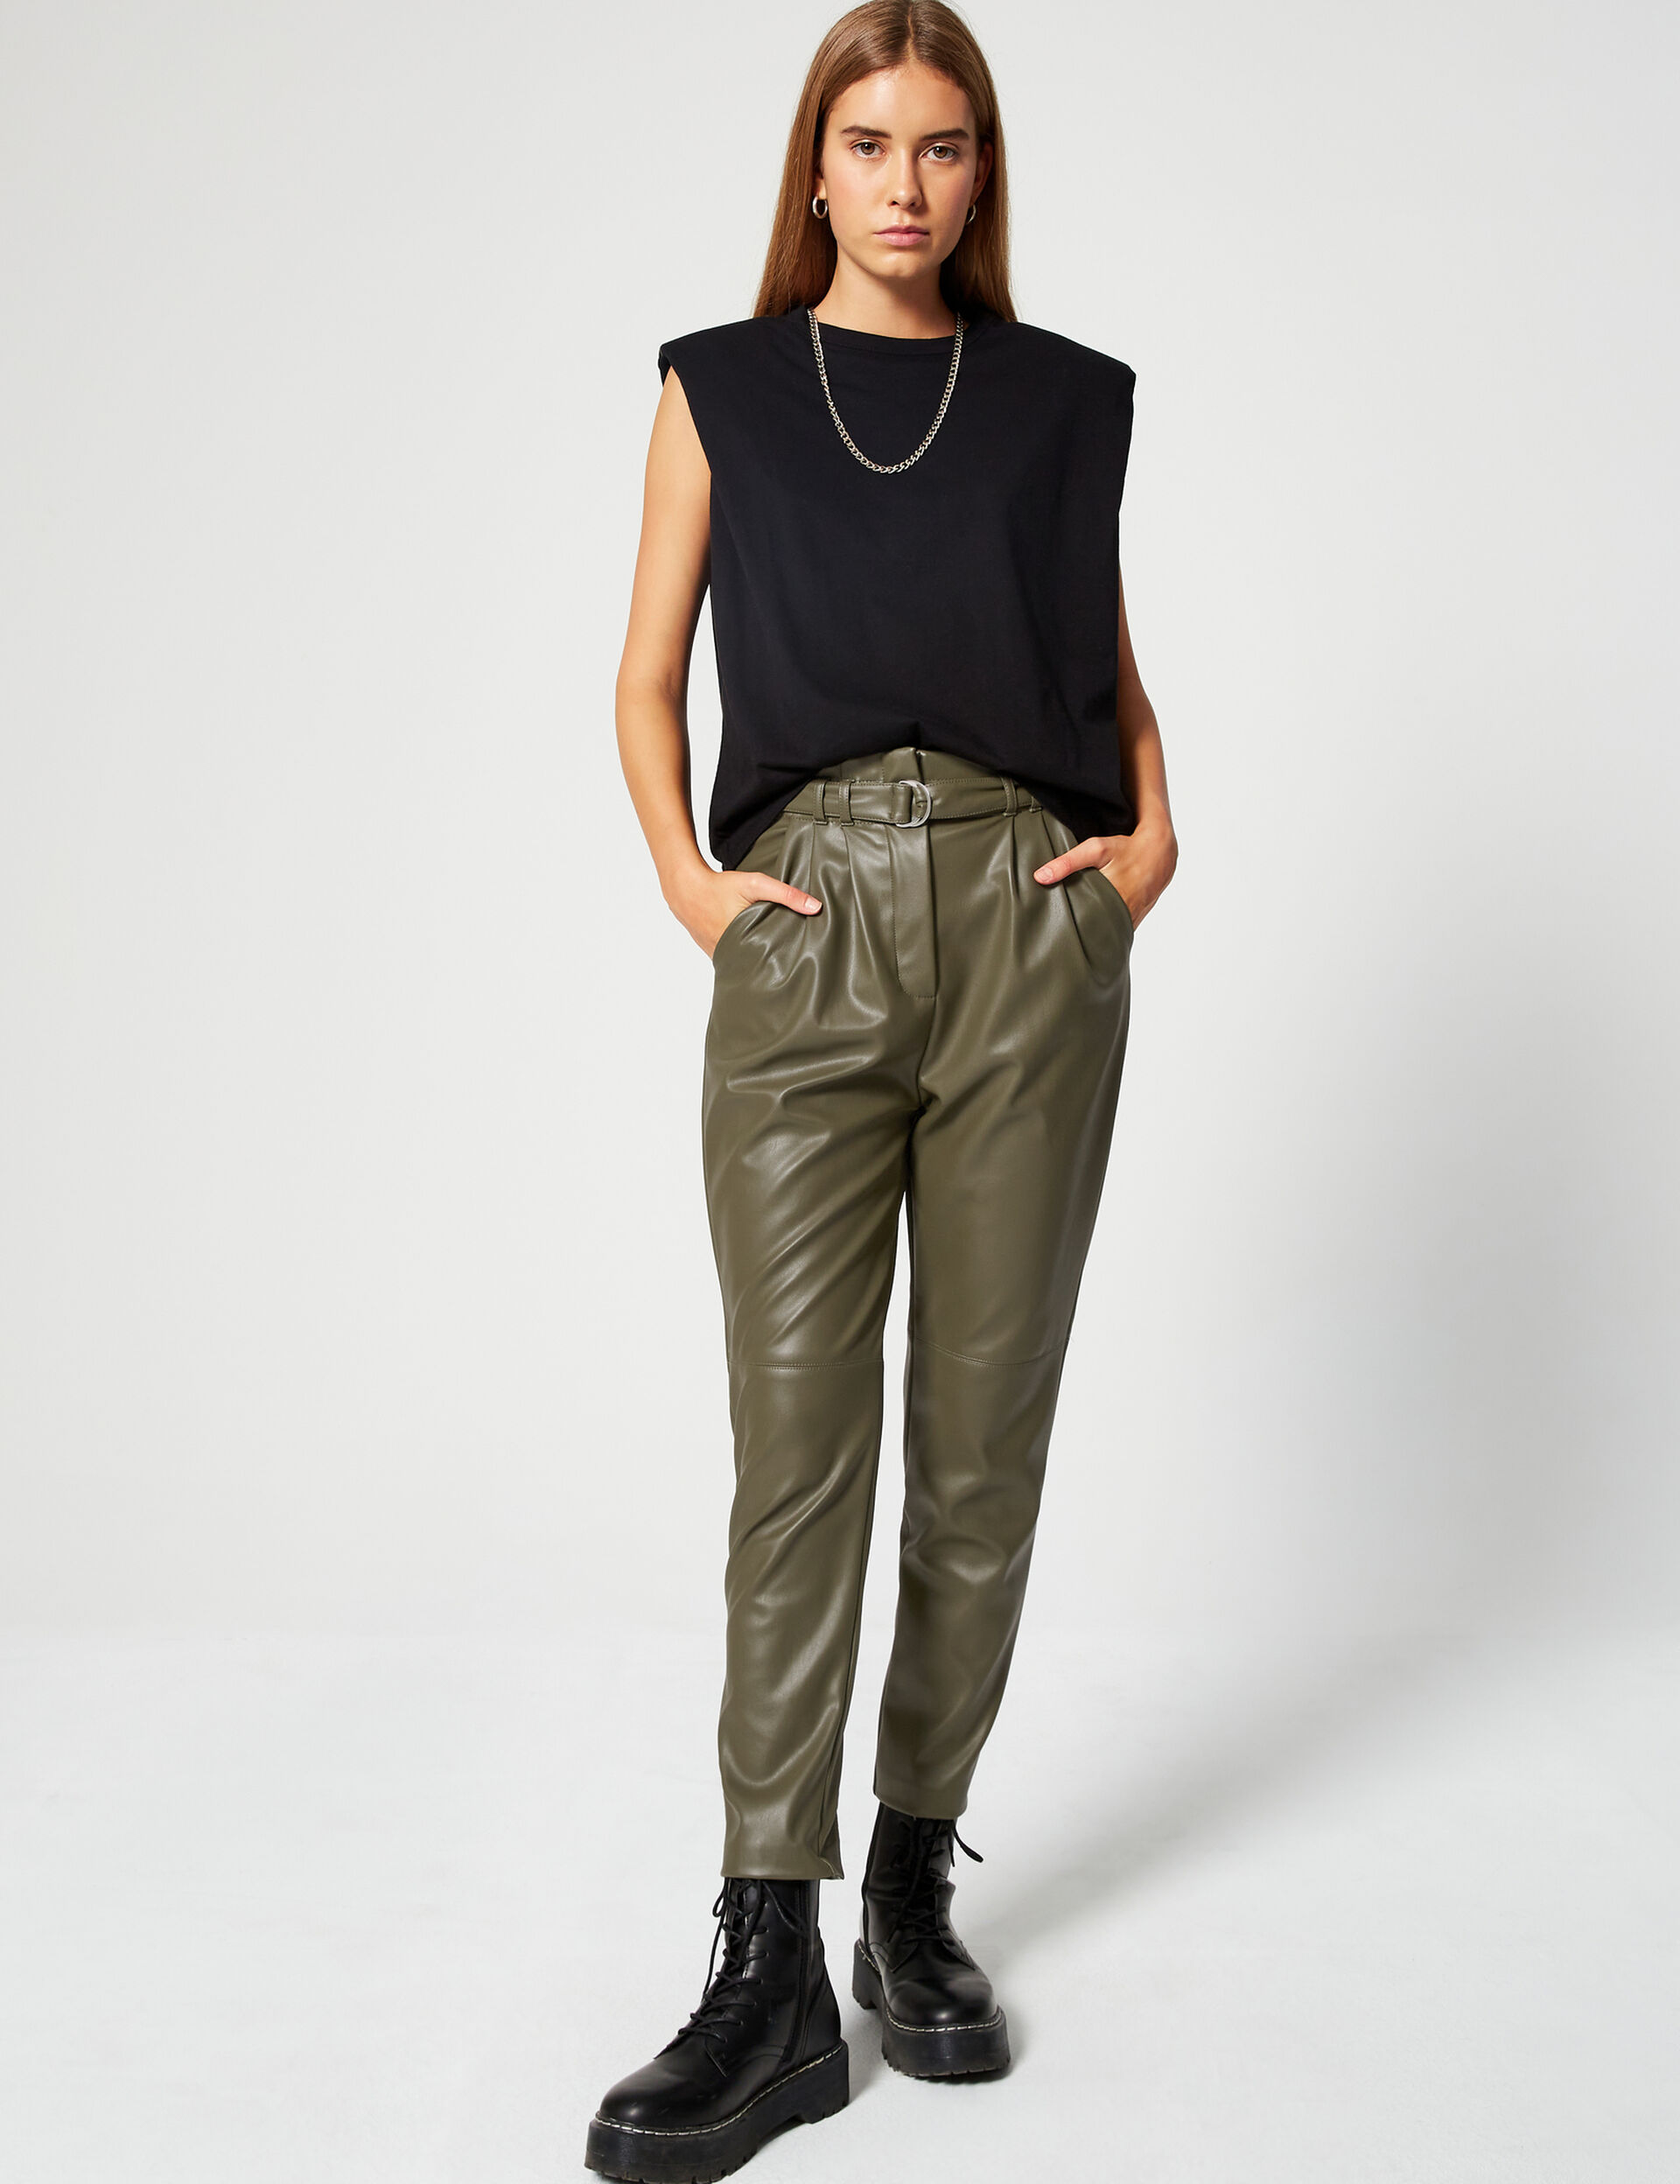 Imitation-leather trousers